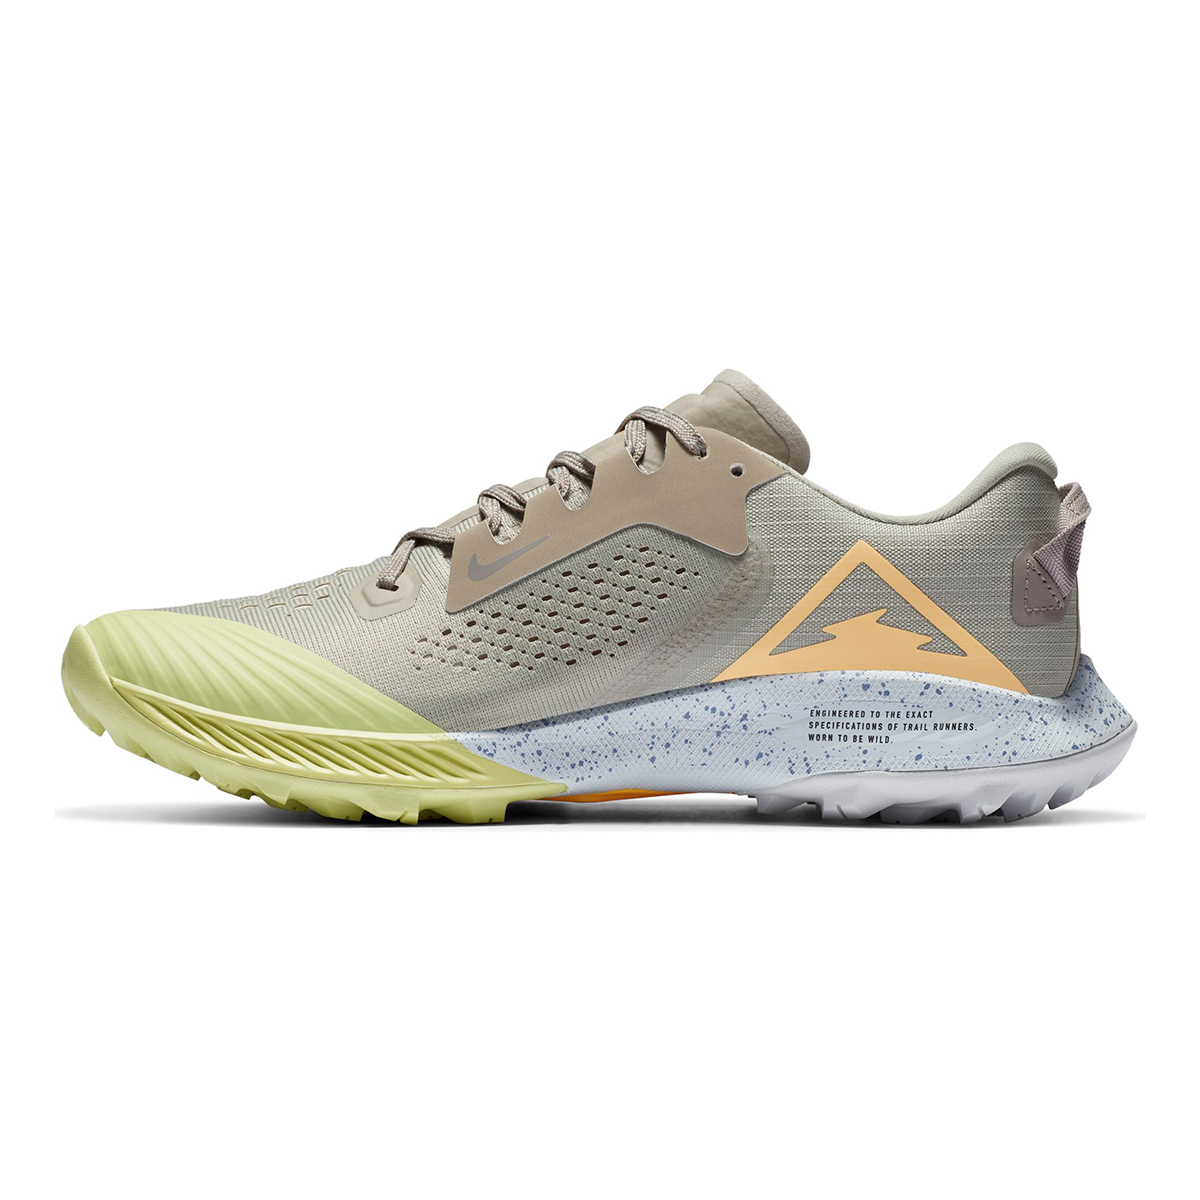 Women's Nike Terra Kiger 6 Trail Running Shoe - Color: Stone/Enigma Stone/Limelight/Melon Tint - Size: 5 - Width: Regular, Stone/Enigma Stone/Limelight/Melon Tint, large, image 4